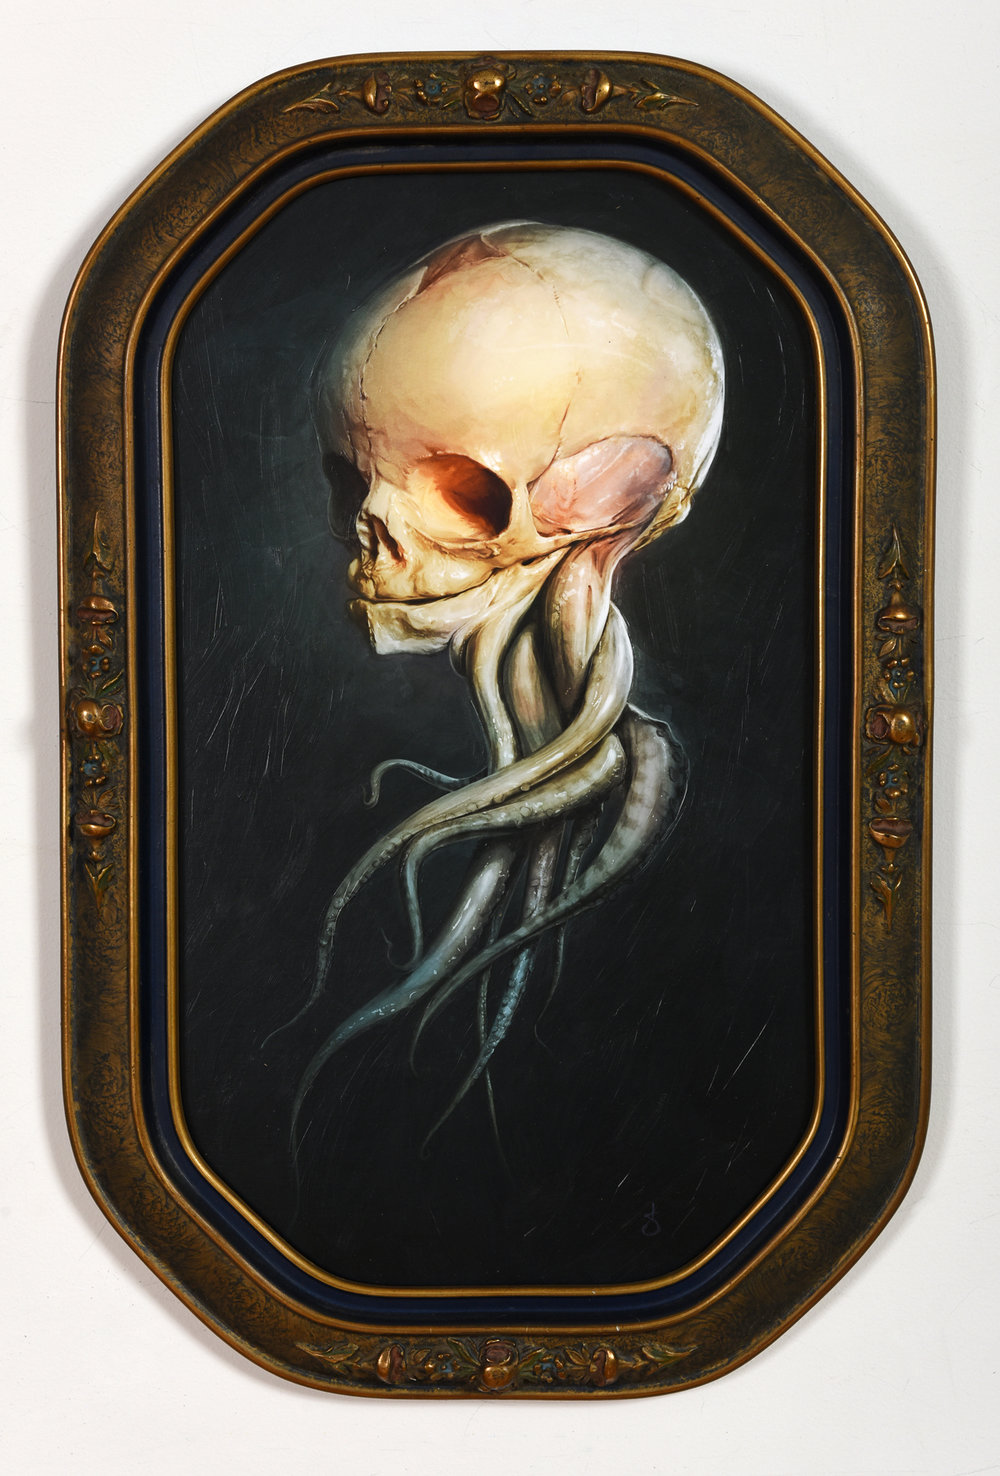 "Homo Marinus -  $600   1 OF 1 MOUNTED, VARNISHED, HAND EMBELLISHED & SIGNED GICLEE PRINT •  11"" X 19"" IN ANTIQUE FRAME  AVAILABLE FOR PURCHASE -  EMAIL FOR MORE INFORMATION"